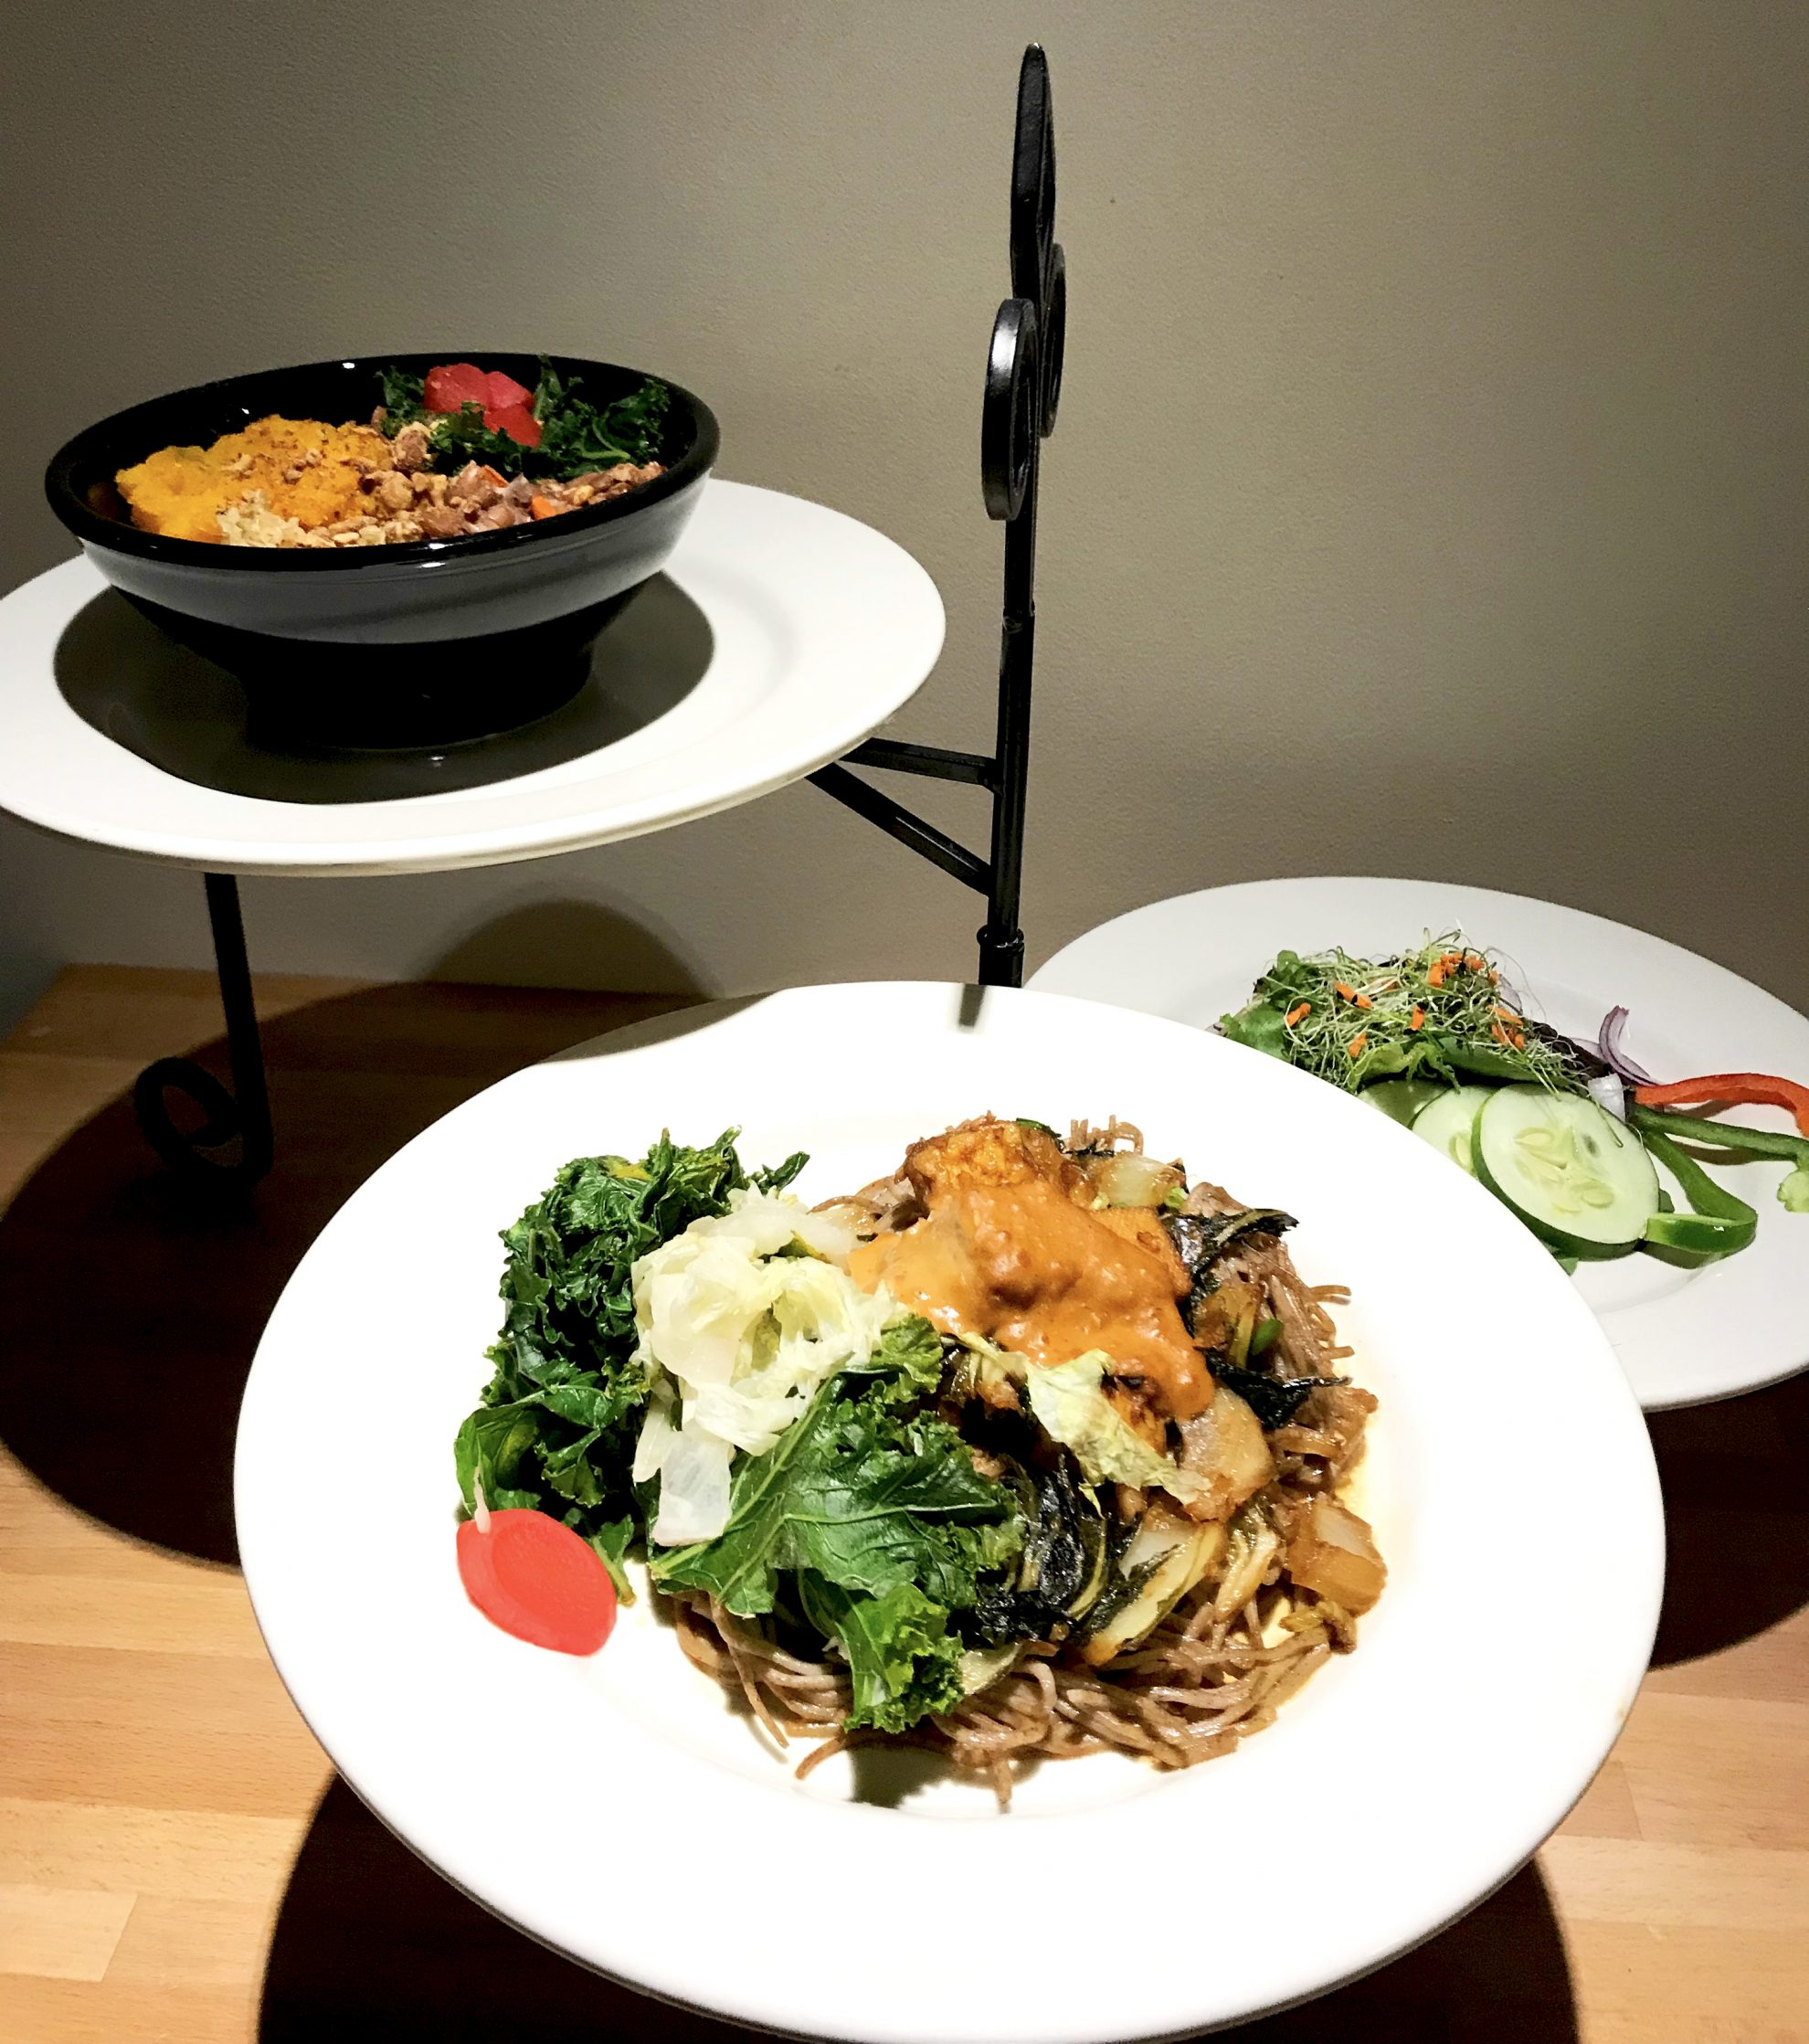 Lunch options, including salad and noodles, at Kripalu Center for Yoga and Health